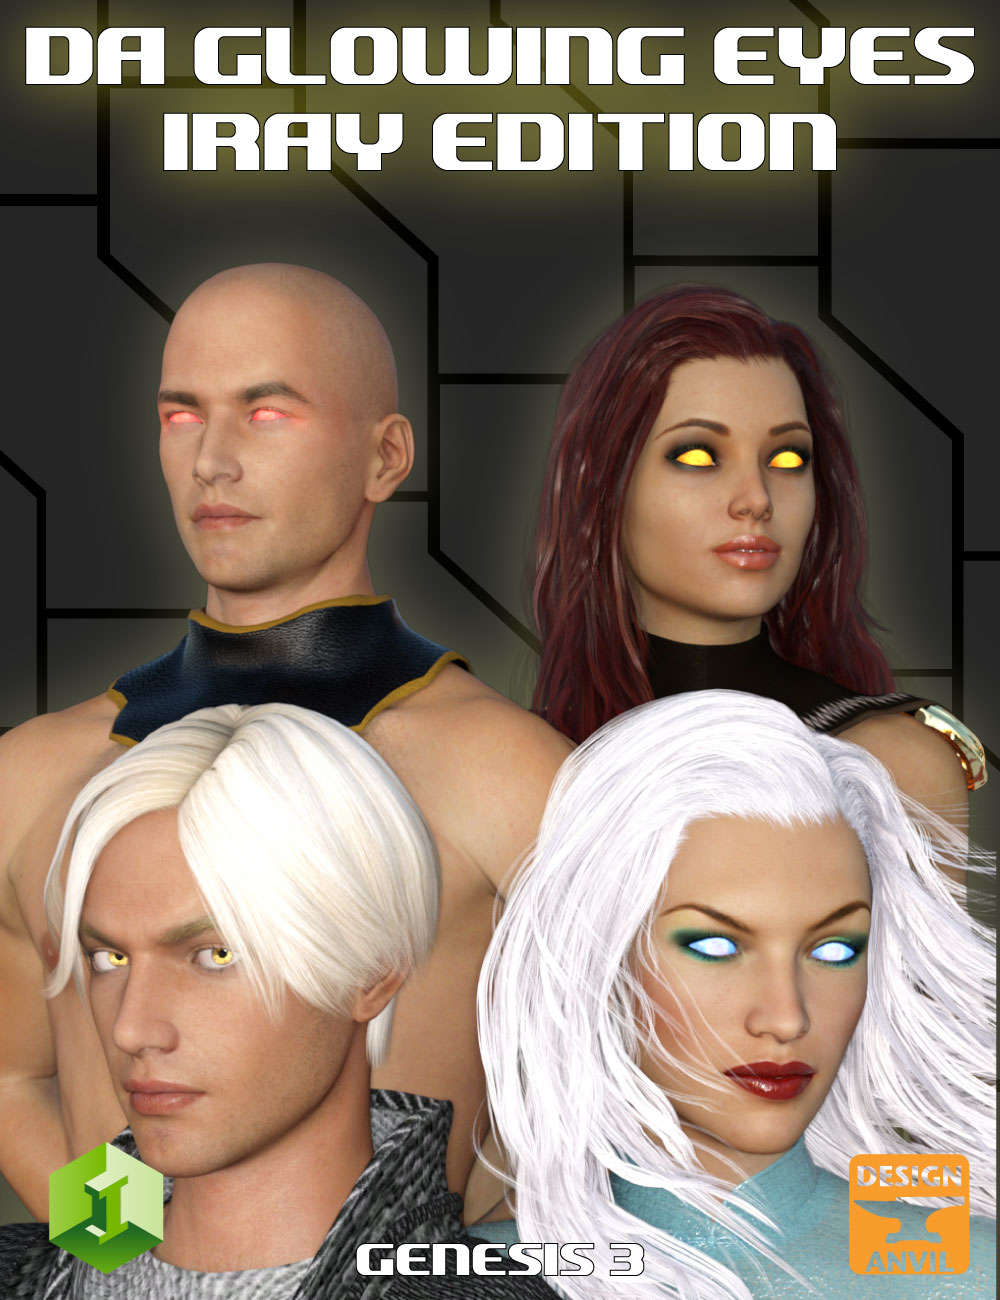 DA Glowing Eyes Iray Edition for Genesis 3 by: Design Anvil, 3D Models by Daz 3D